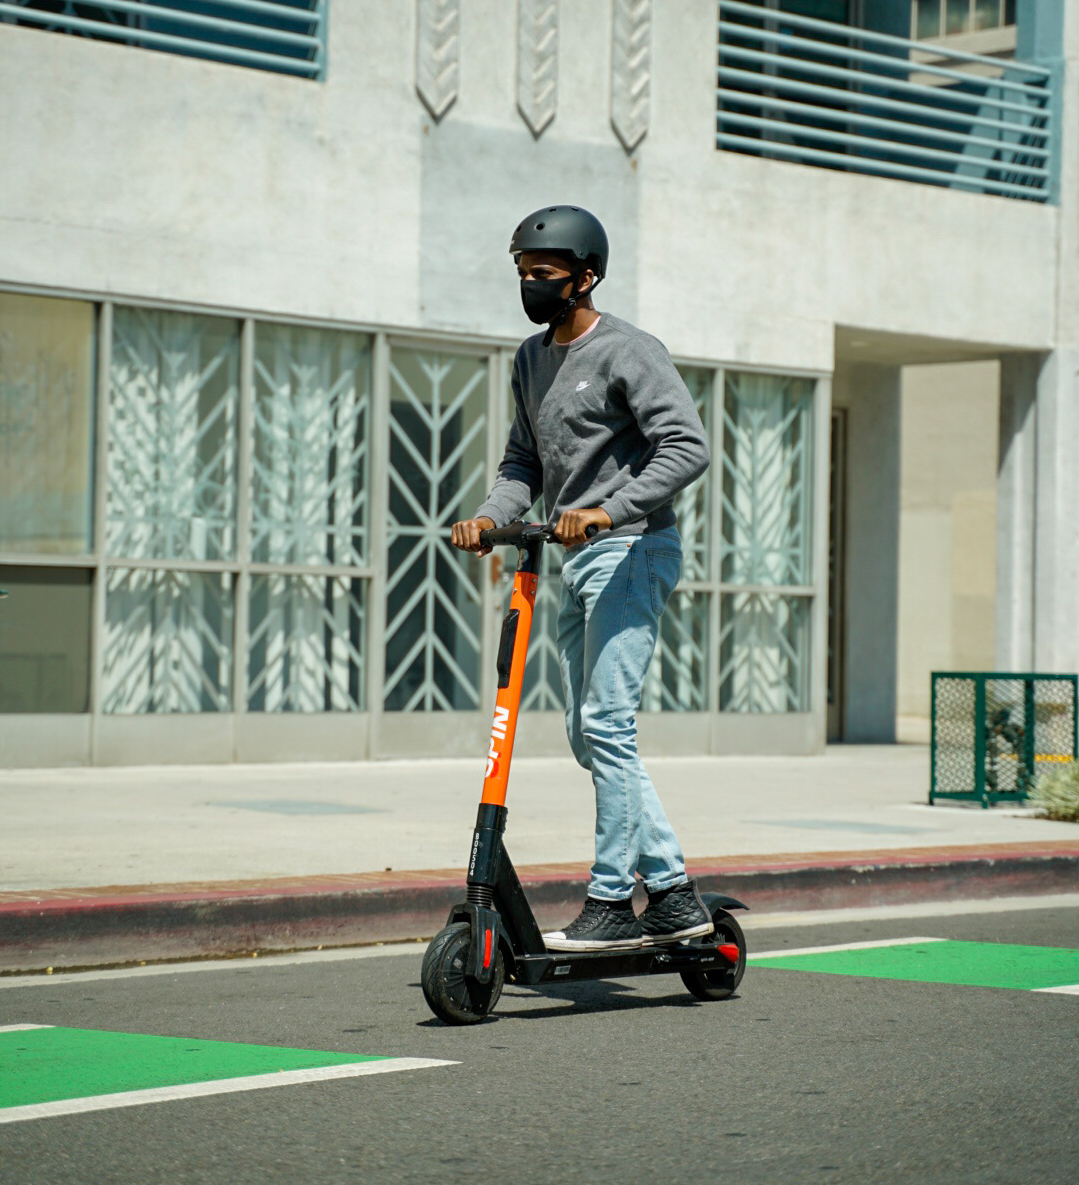 A person wearing a mask rides a scooter down the street